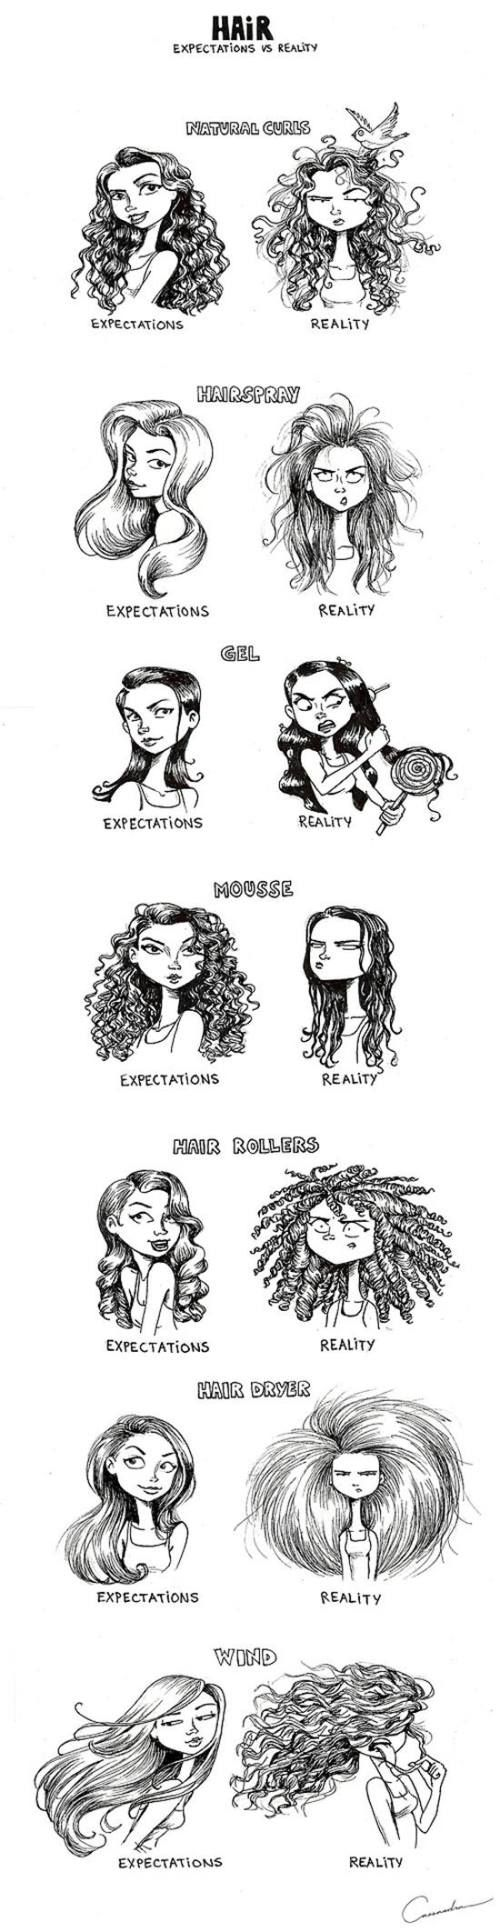 Hair expectations.